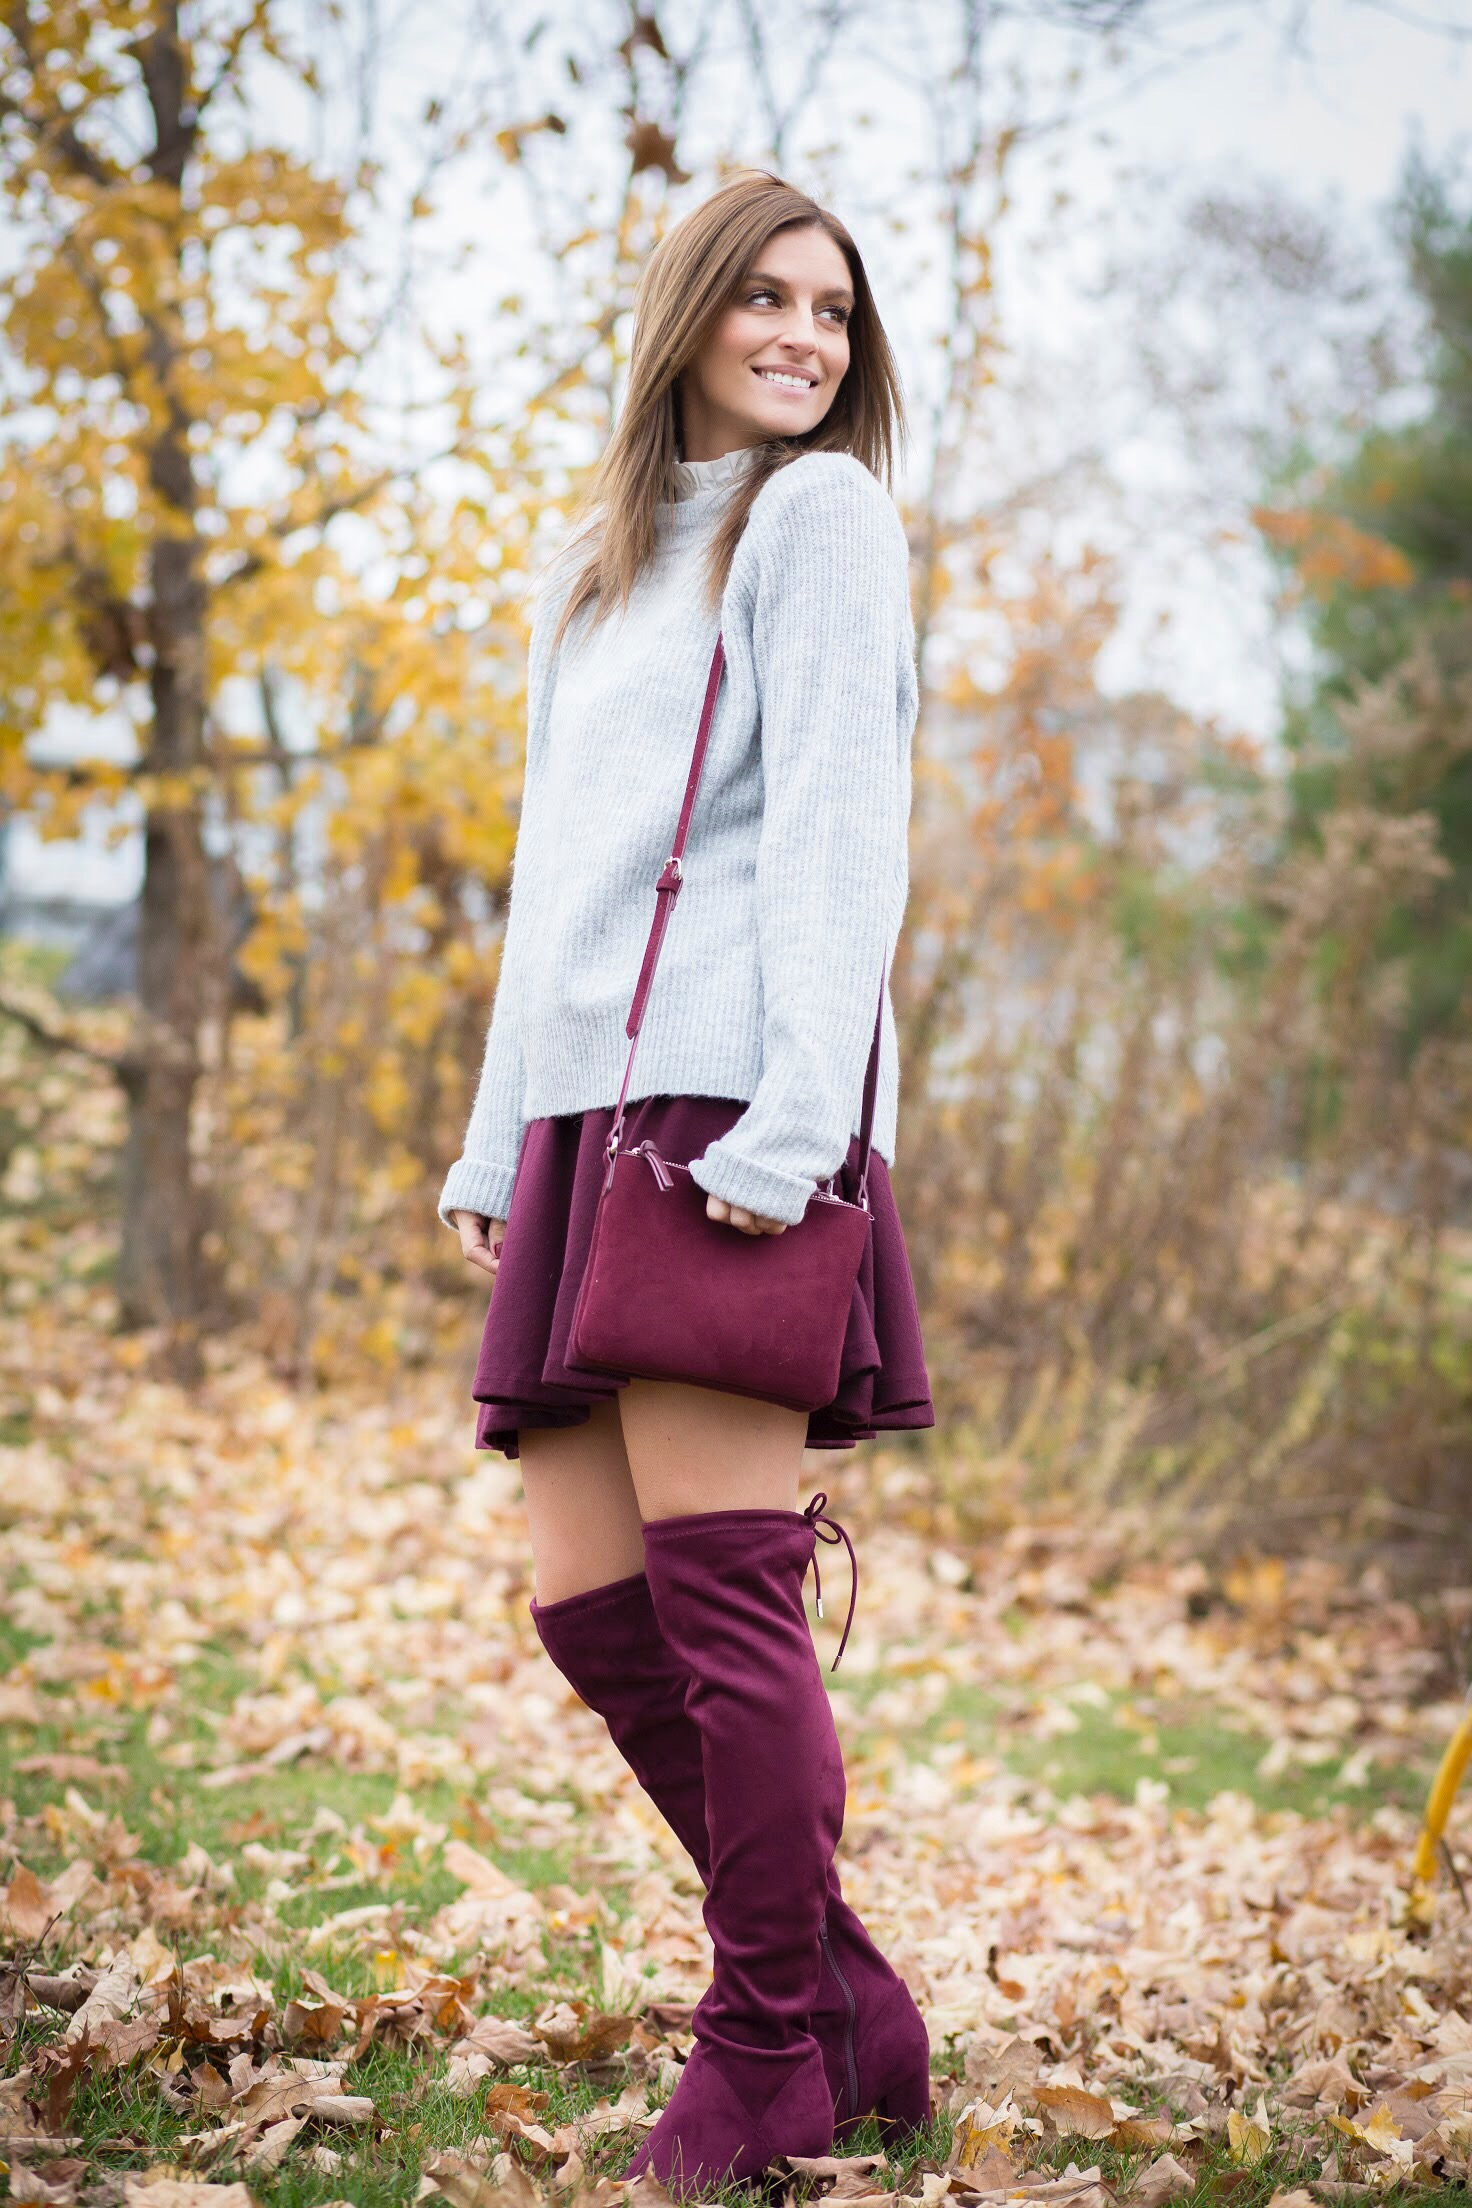 stylish blogger look for the holidays - fall style with burgundy skirt, burgundy over the knee boots, and grey sweater sparkleshinylove mandy furnis